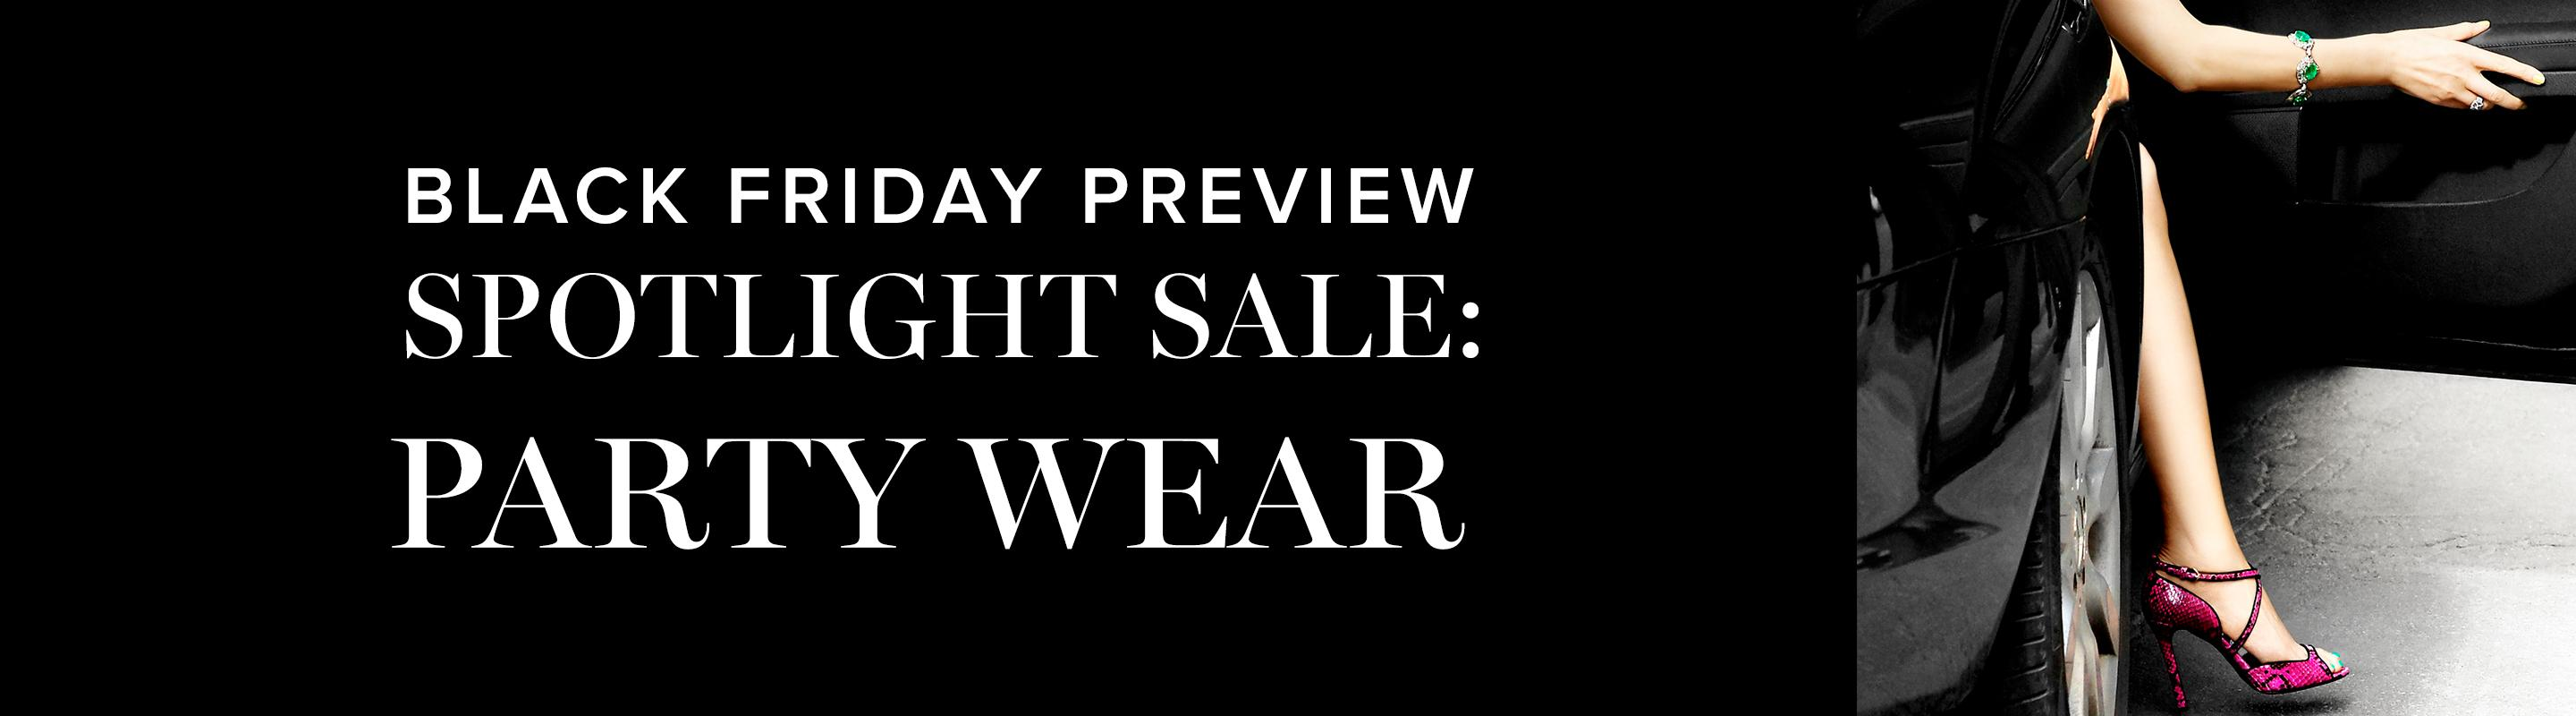 Black Friday Preview Sale: Party Wear